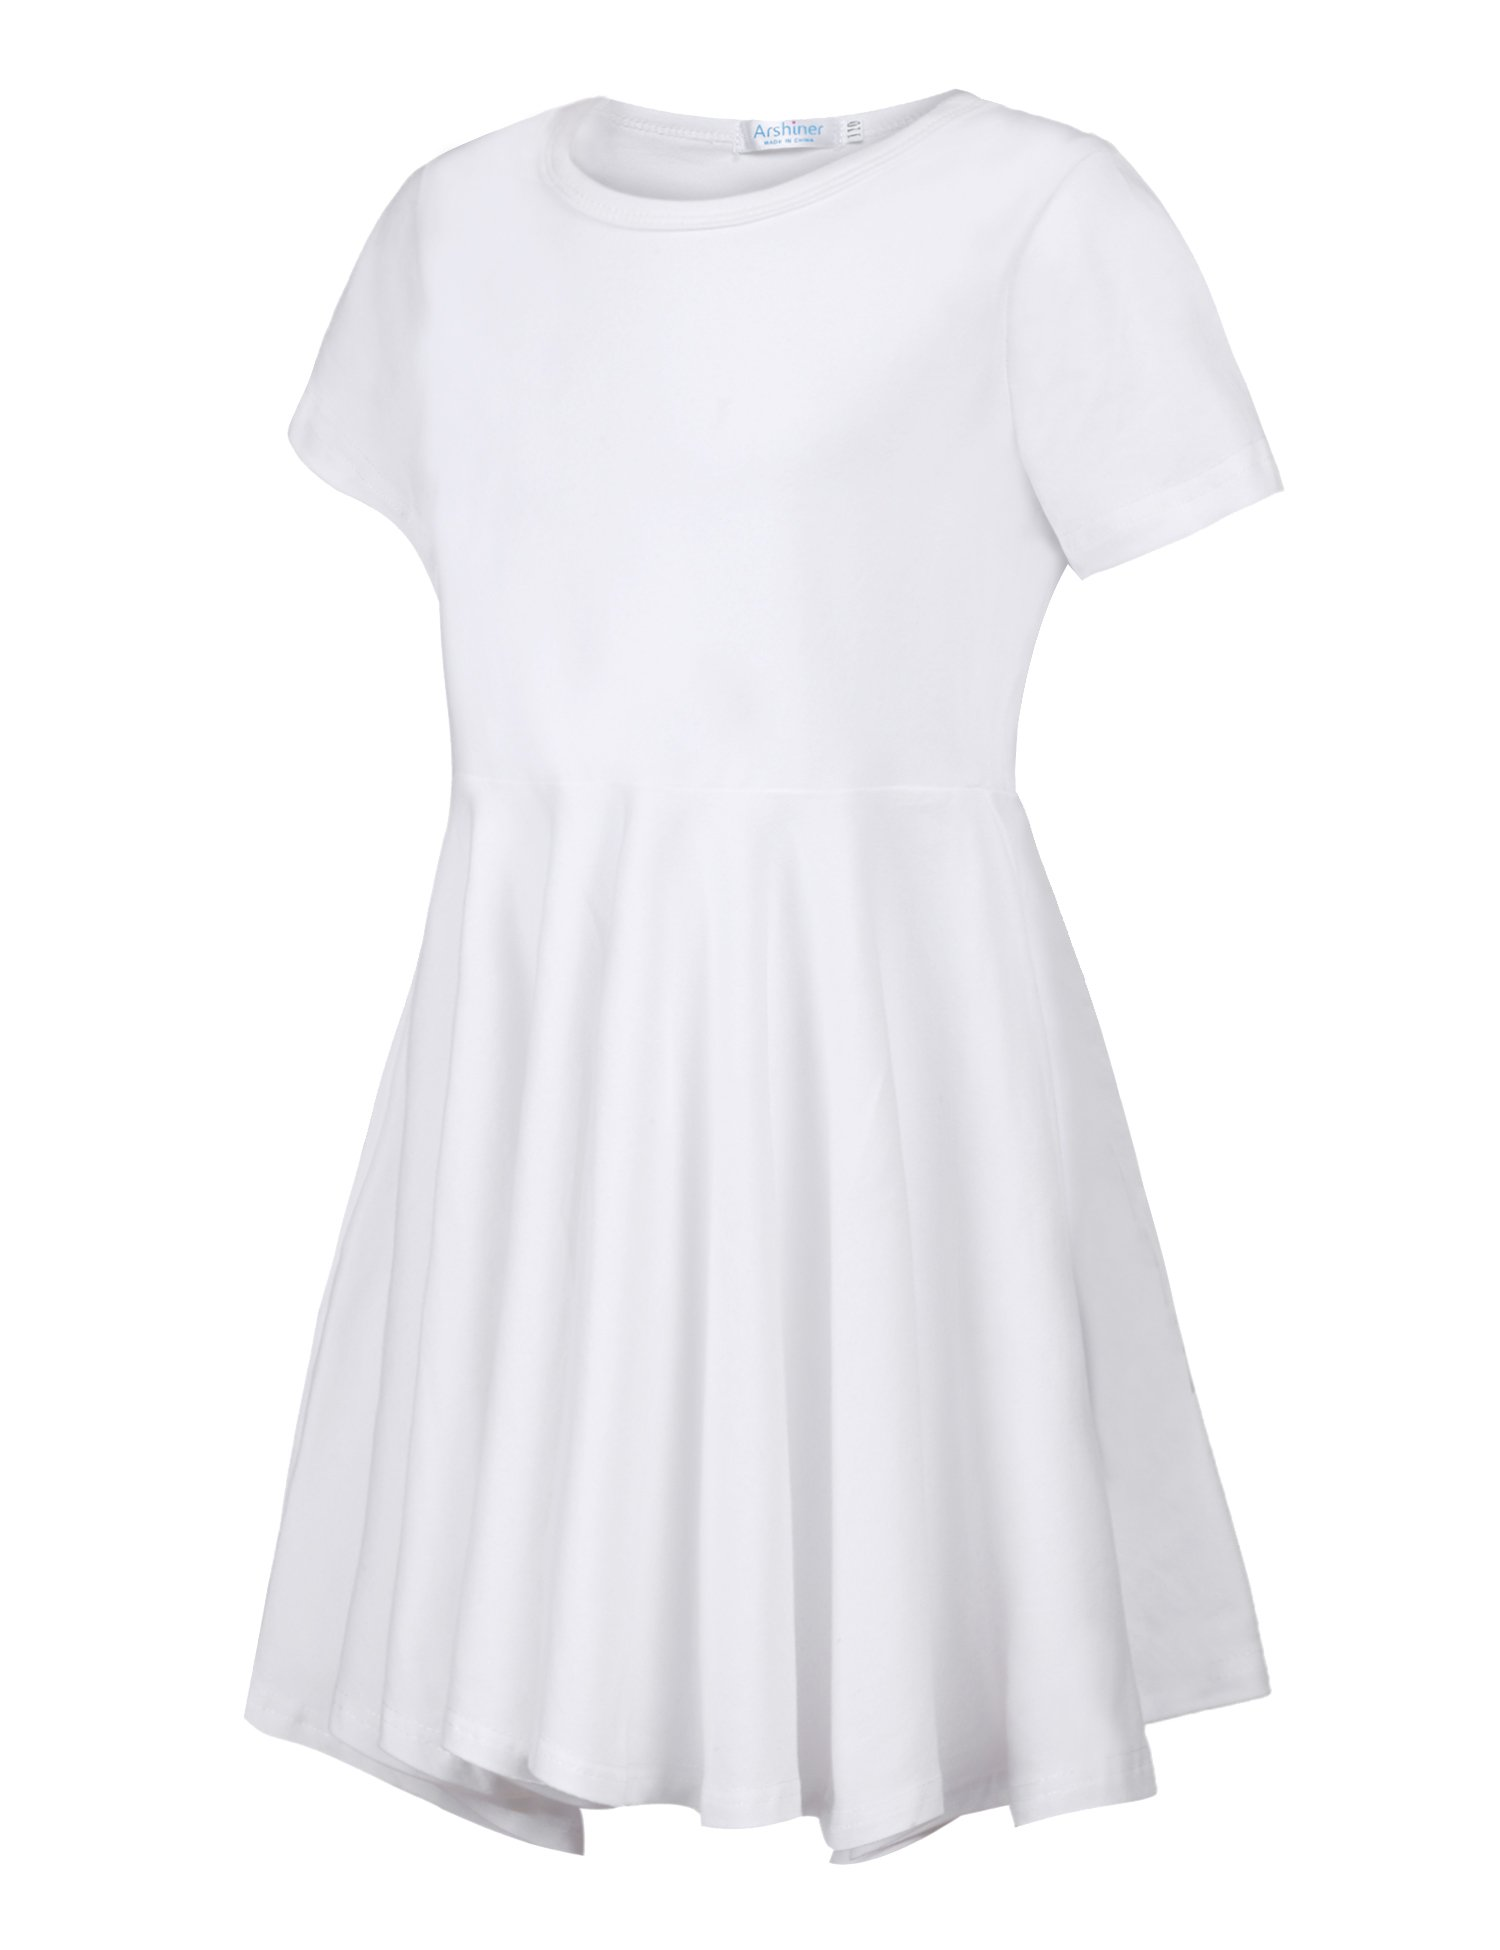 Arshiner Girls Short Sleeve Dress A Line Skater Swing Asymmetrical High Low Hem Casual Dress by Arshiner (Image #2)